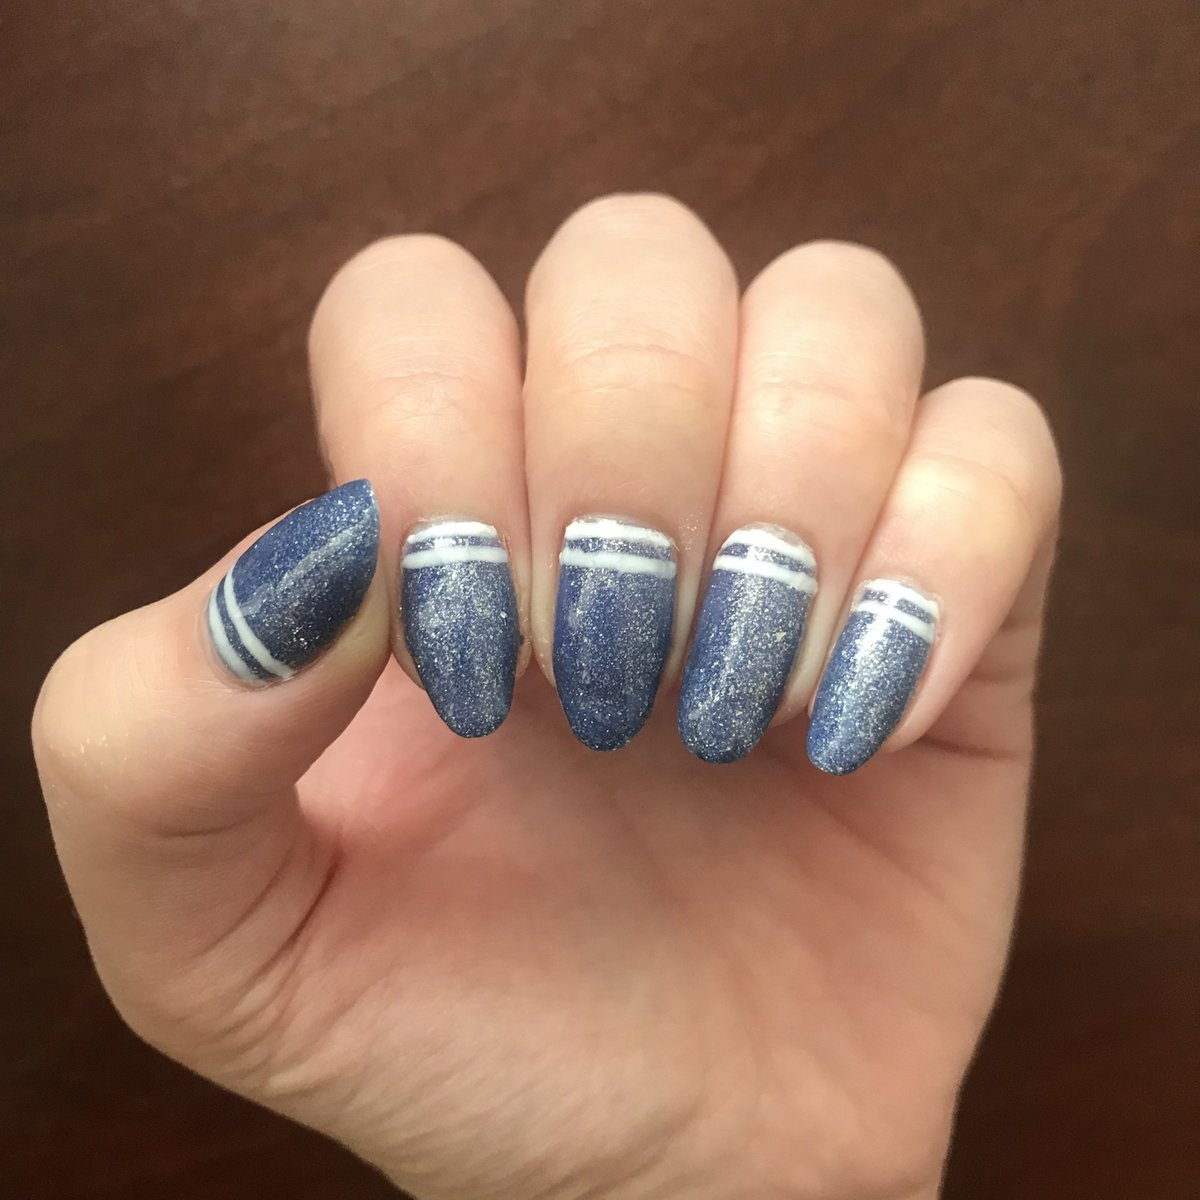 Aimeili Gel Polish On Twitter You Can Do Other Kinds Of Nail Art